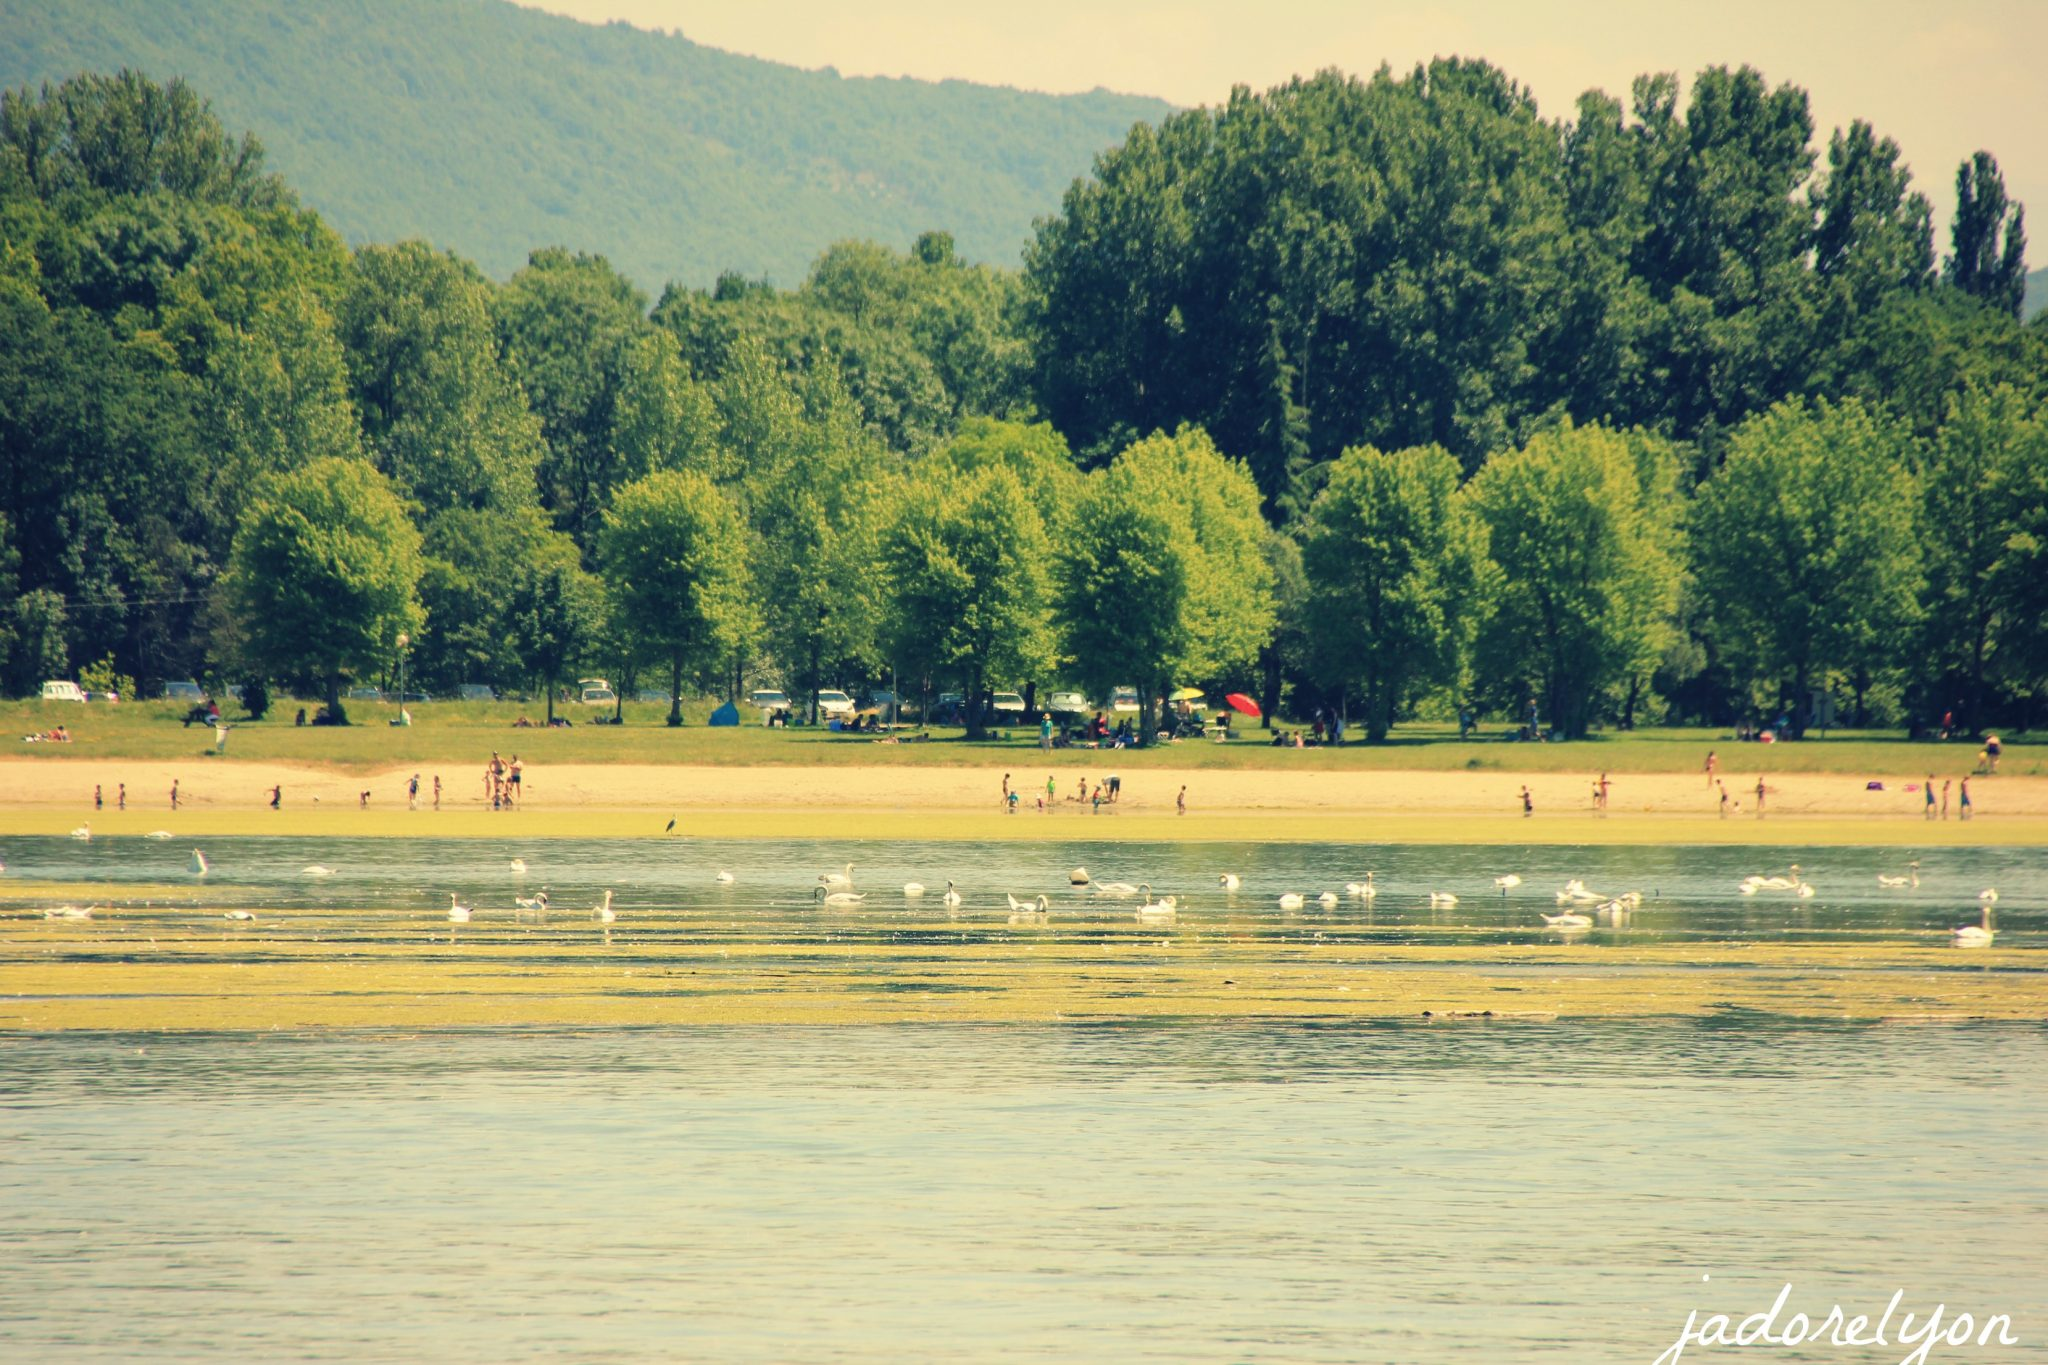 Beach, picnic area and the lake - a perfect family day out